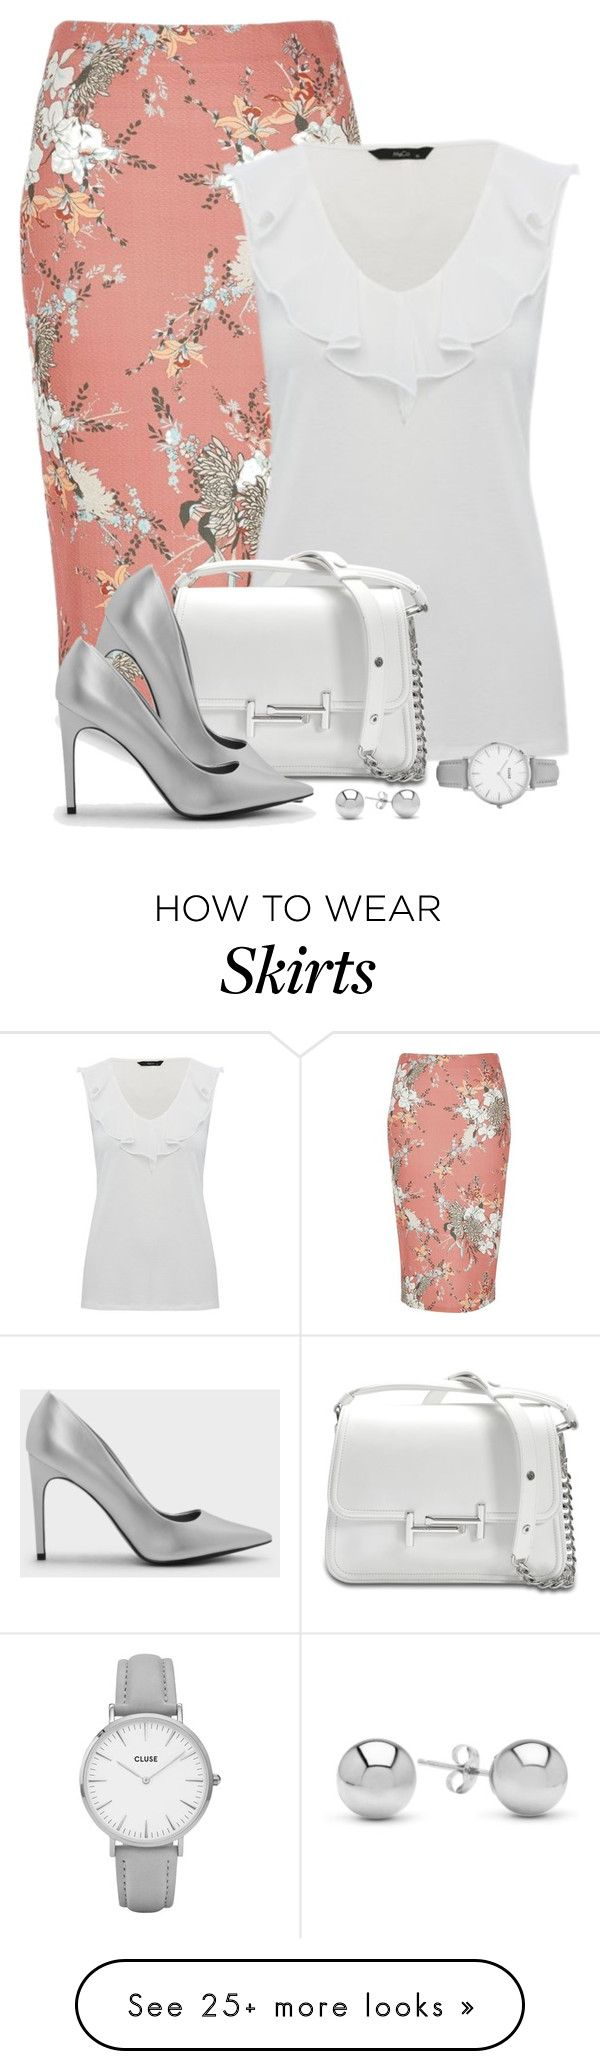 """Untitled #180"" by mindy-2-1 on Polyvore featuring River Island, Tod's, CHARLES & KEITH, CLUSE and Jewelonfire"